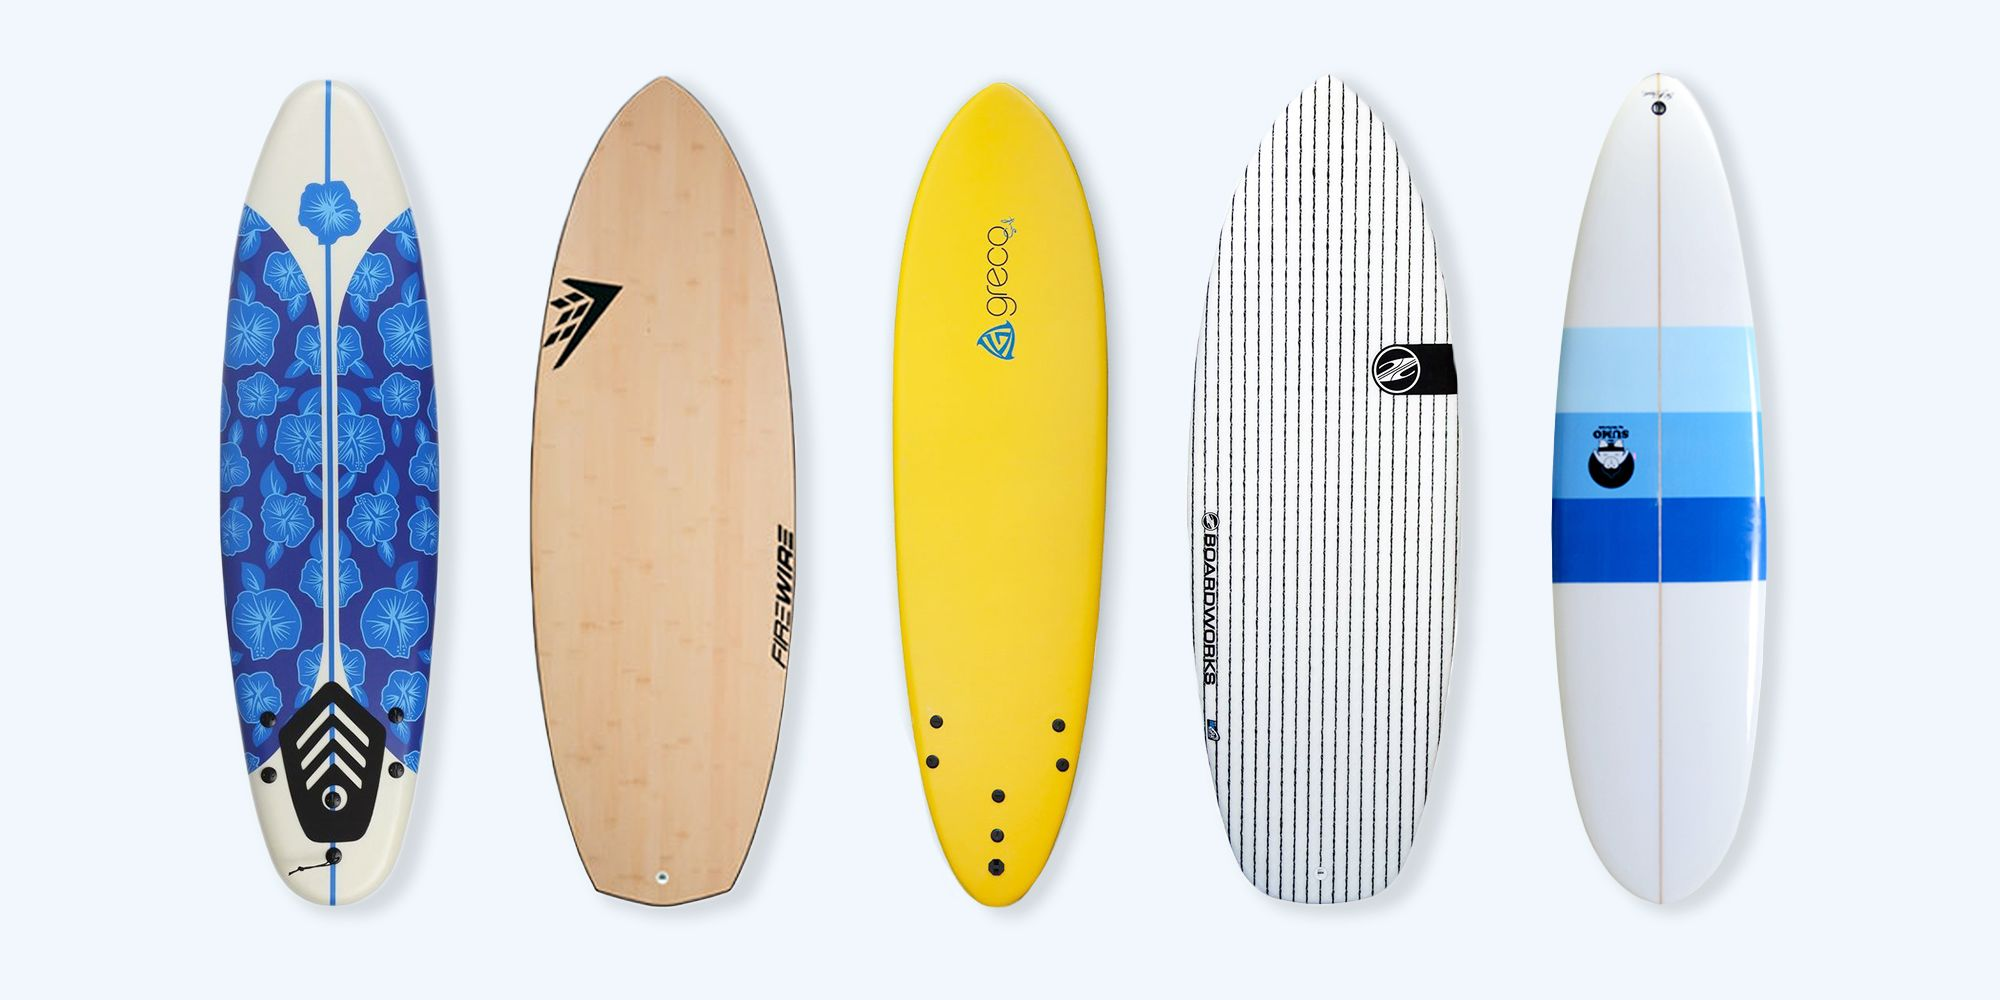 8 Best Surfboards and Longboards 2018 - Surfboards For Every Level b1c3004d00